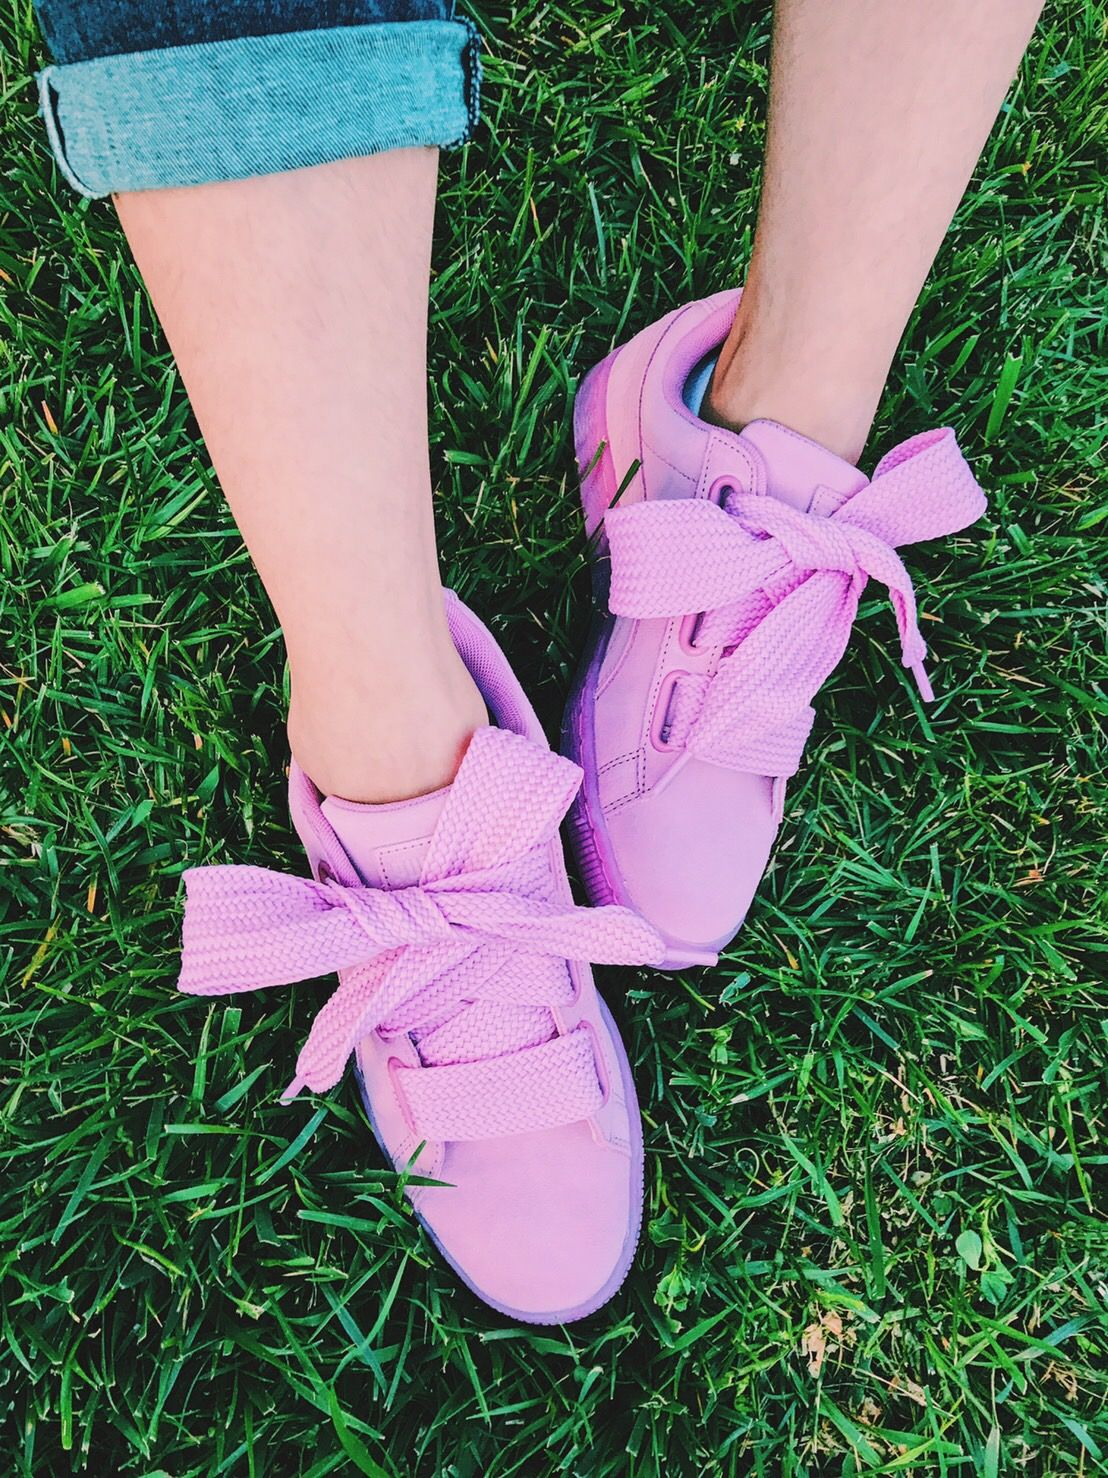 Basket Bow Puma Women's Pink Heart Suede Reset Prism Leather Laces Yb7yIf6gvm